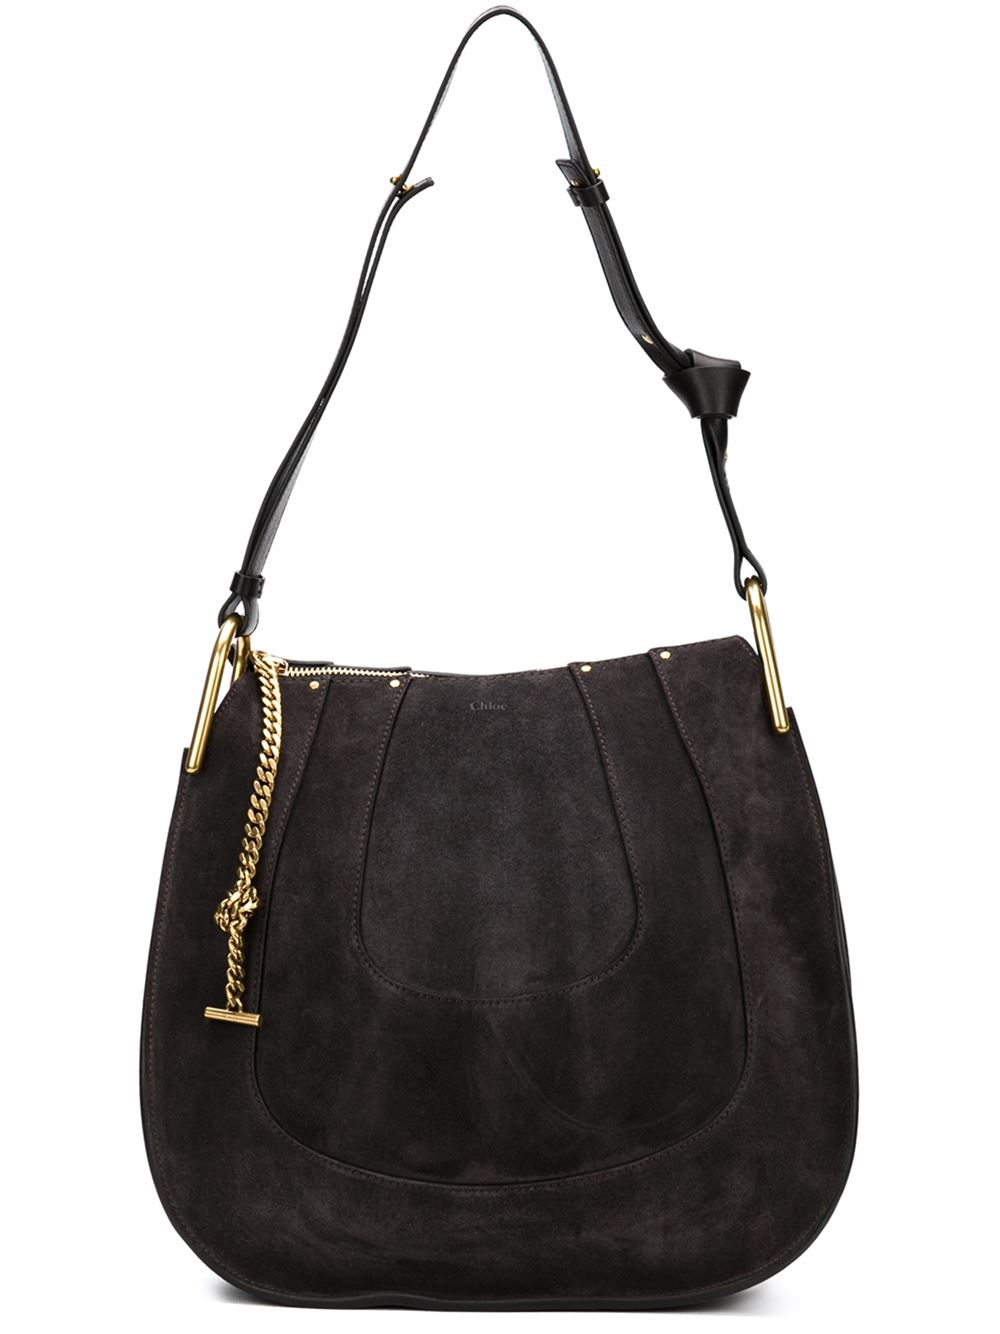 9101cedabc43 Chlo¨¦ Hayley Leather Shoulder Bag in Black (GREY)